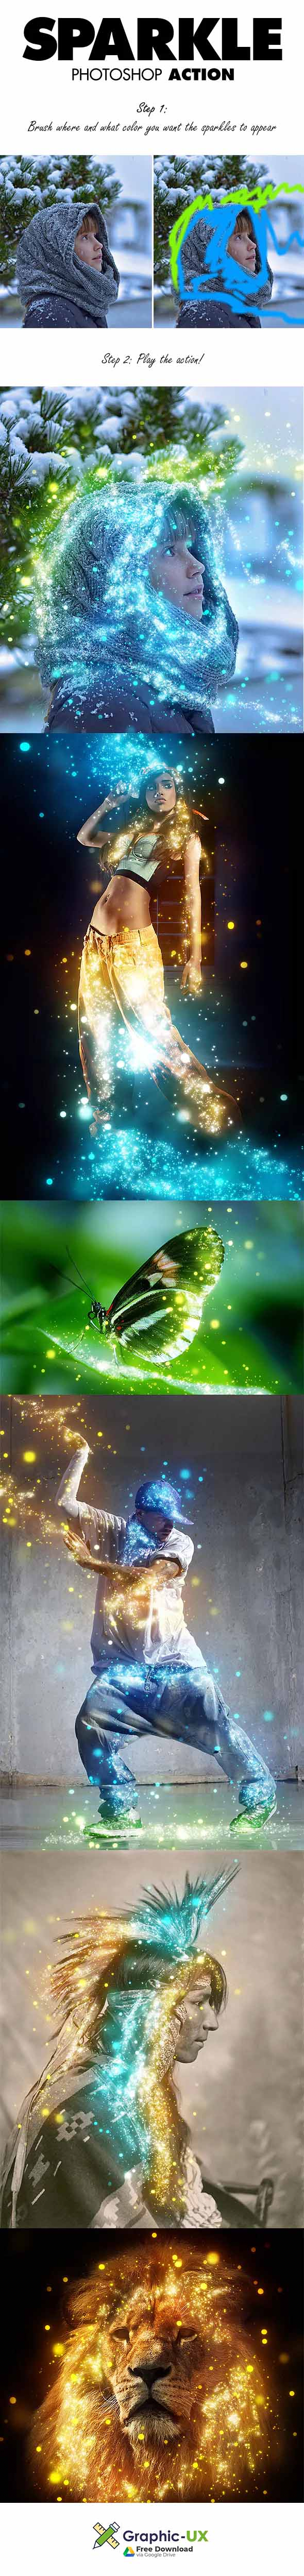 Sparkle Photoshop Action free download – GraphicUX